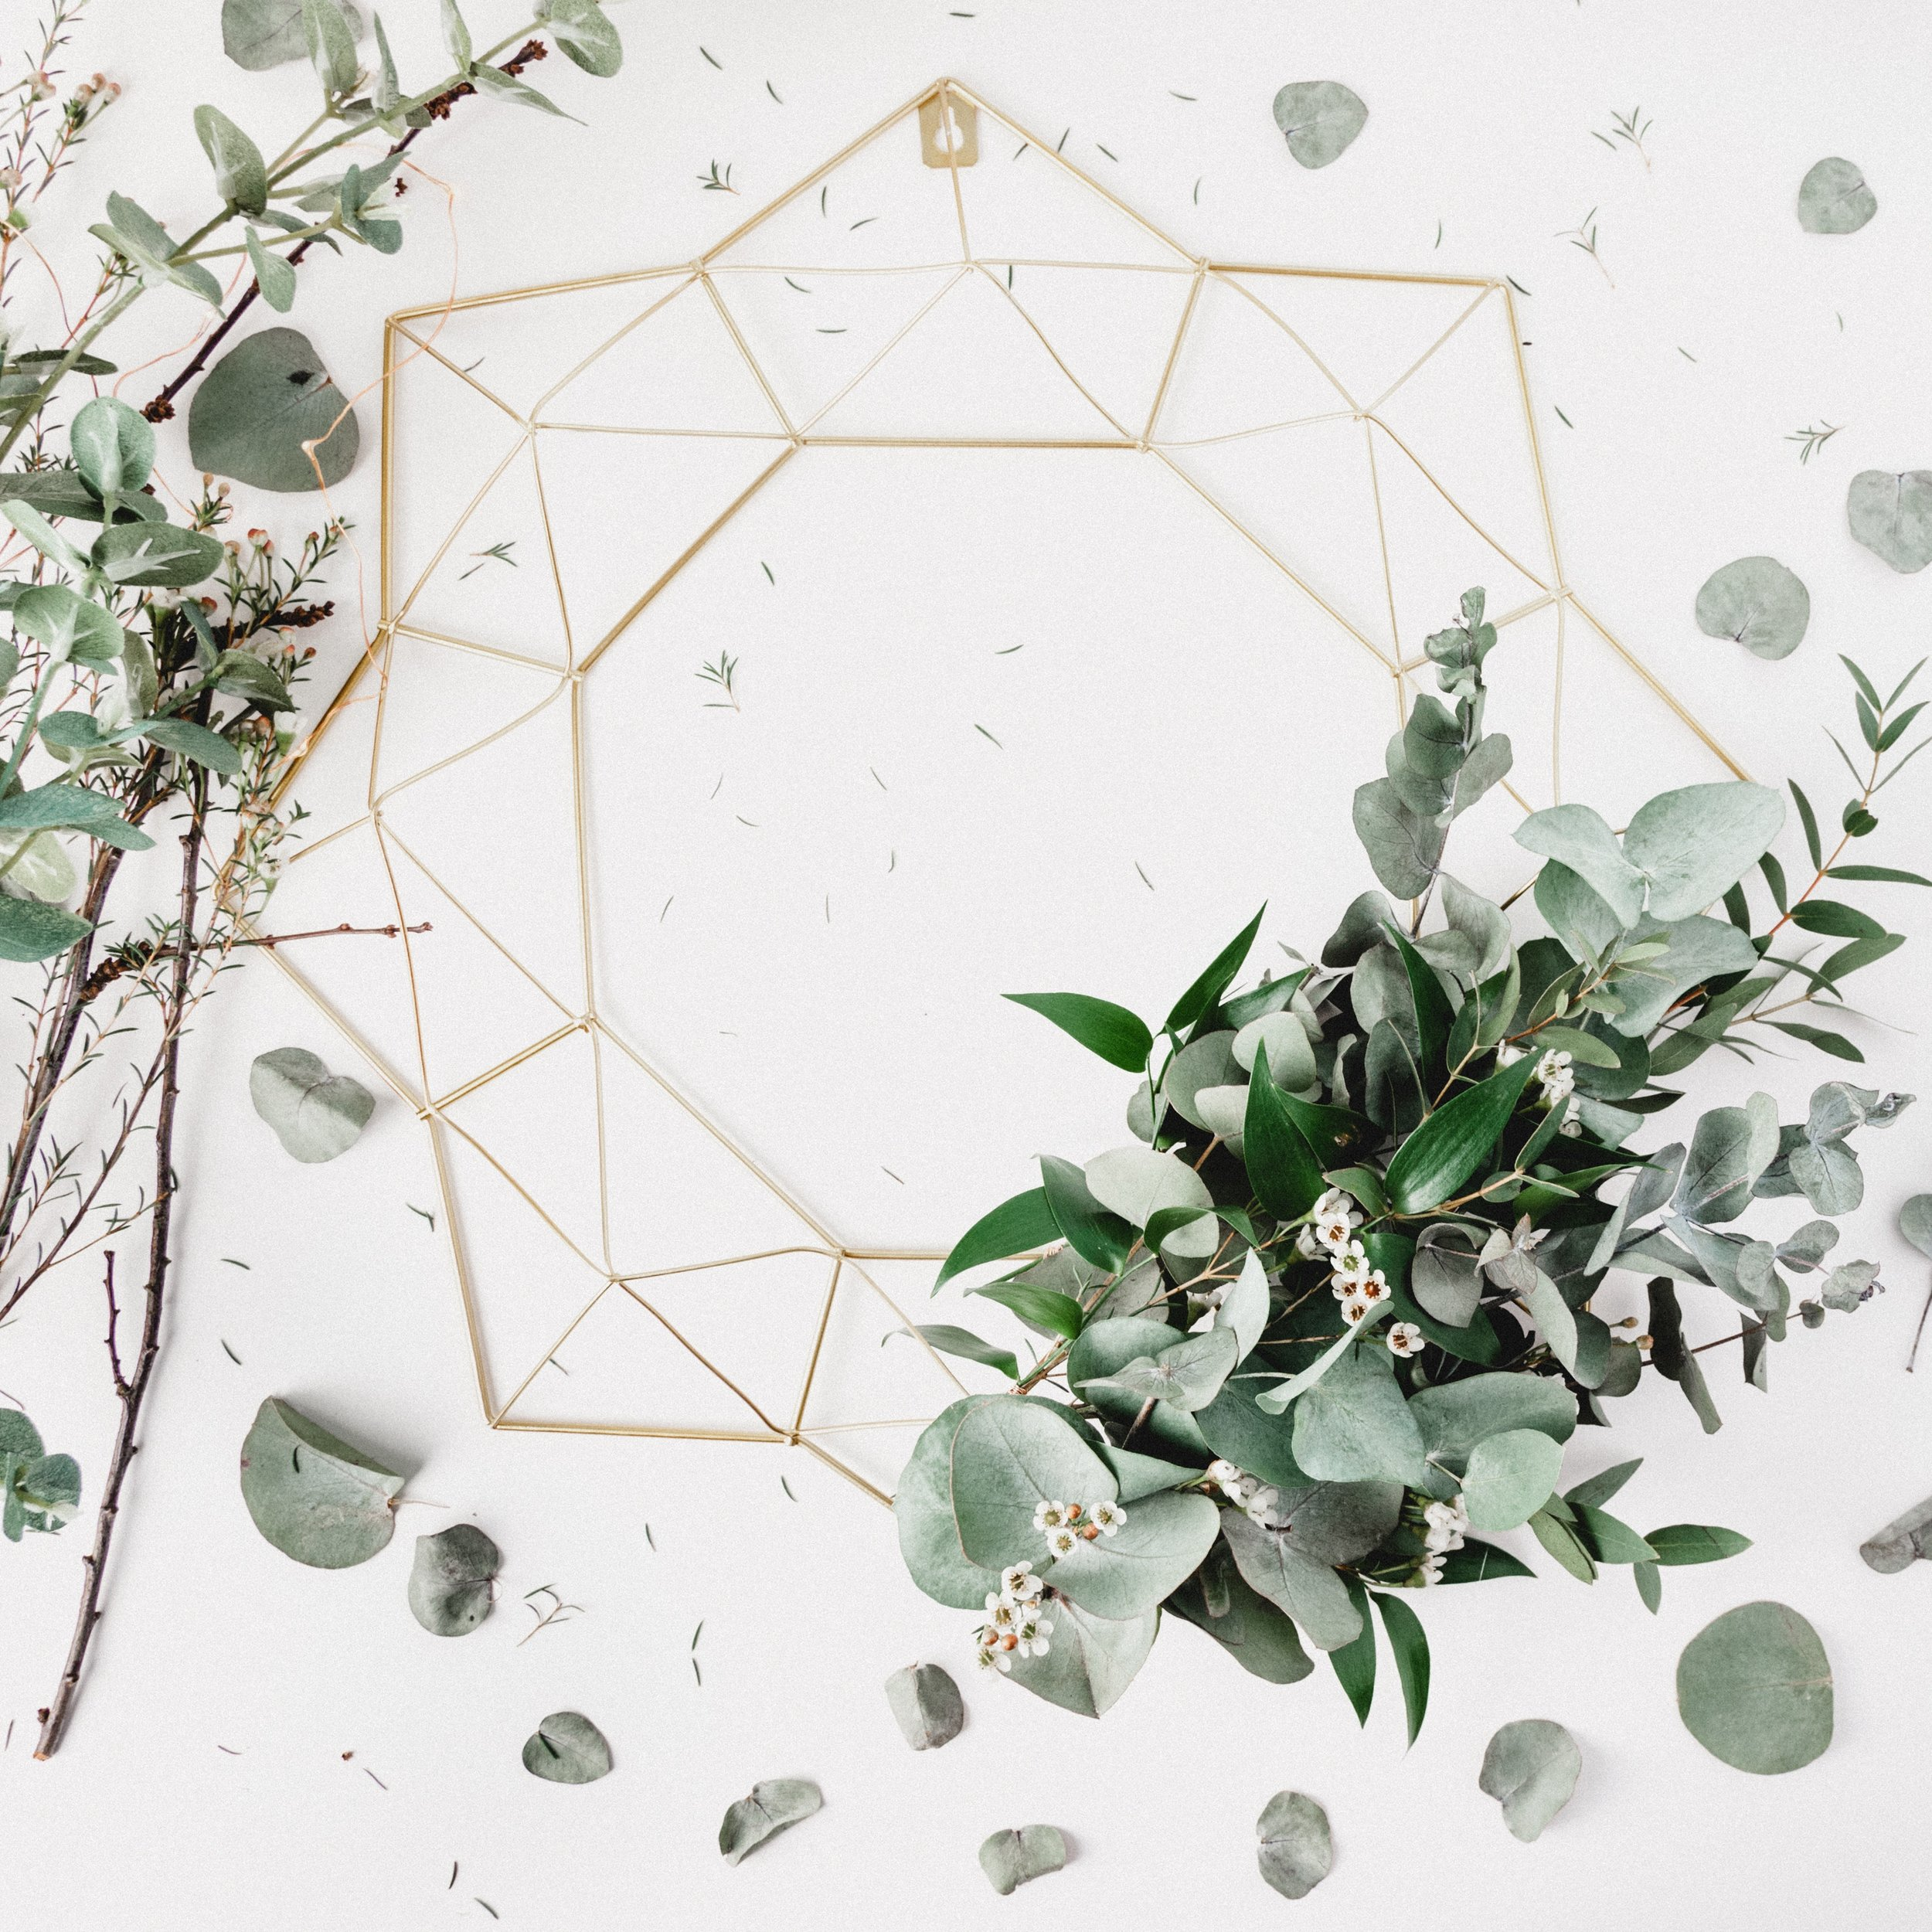 Eucalyptus branches and a sacred geometry form